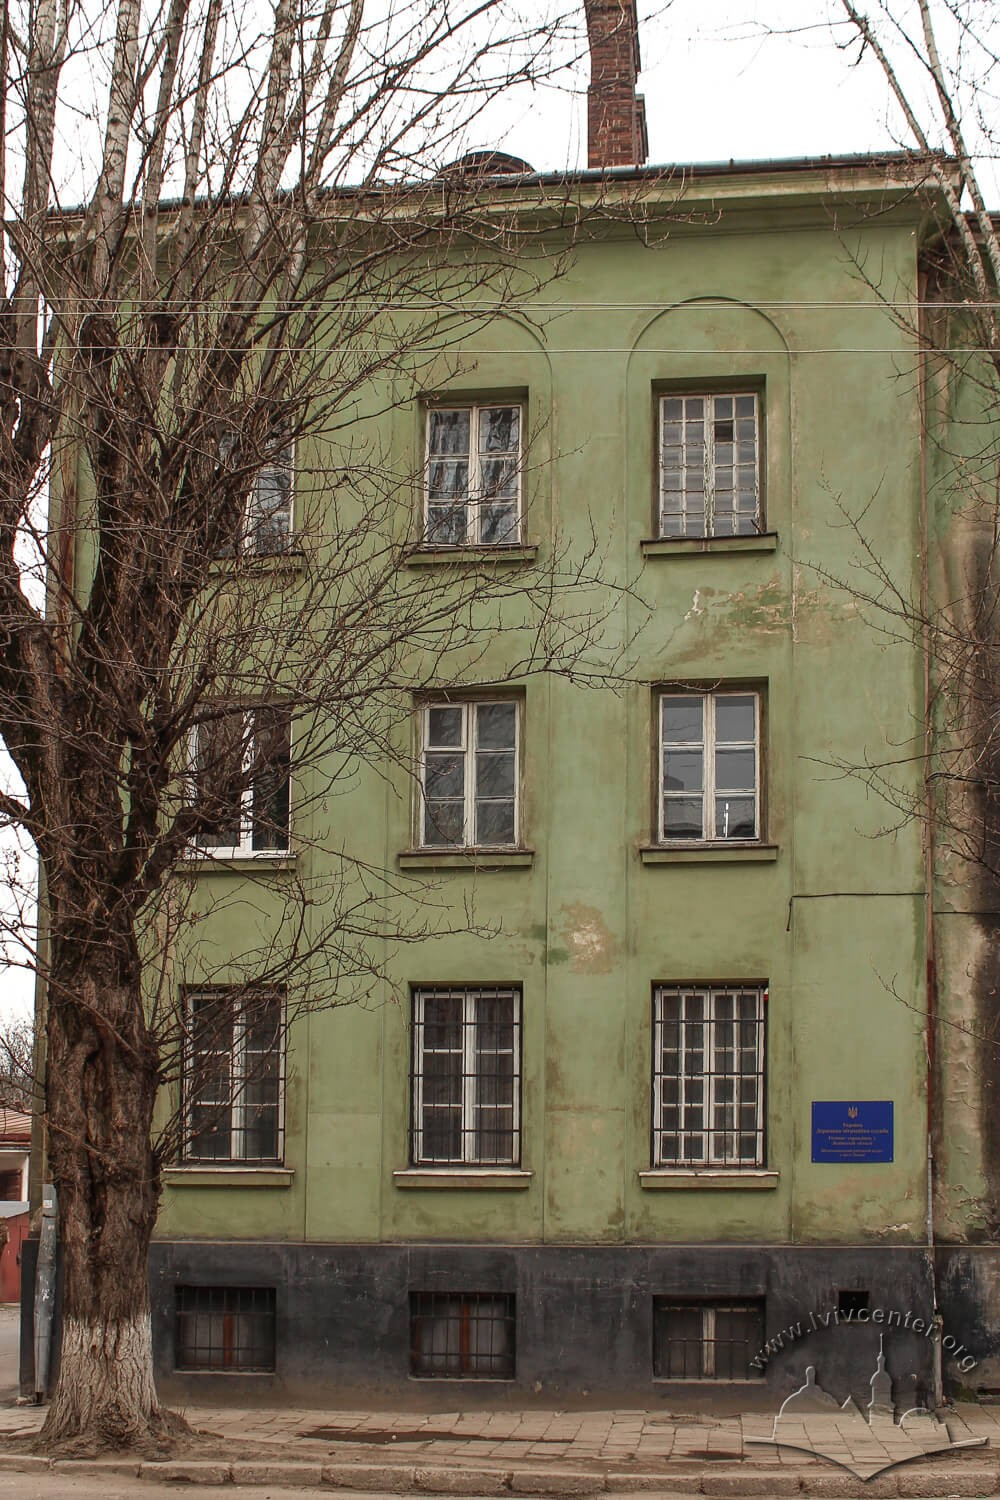 Vul. Donetska, 3. Side avant-corps on the main facade of the building. A plaque tells that the State Miration Service's offices are located here/Photo courtesy of Olha Zarechnyuk, 2016